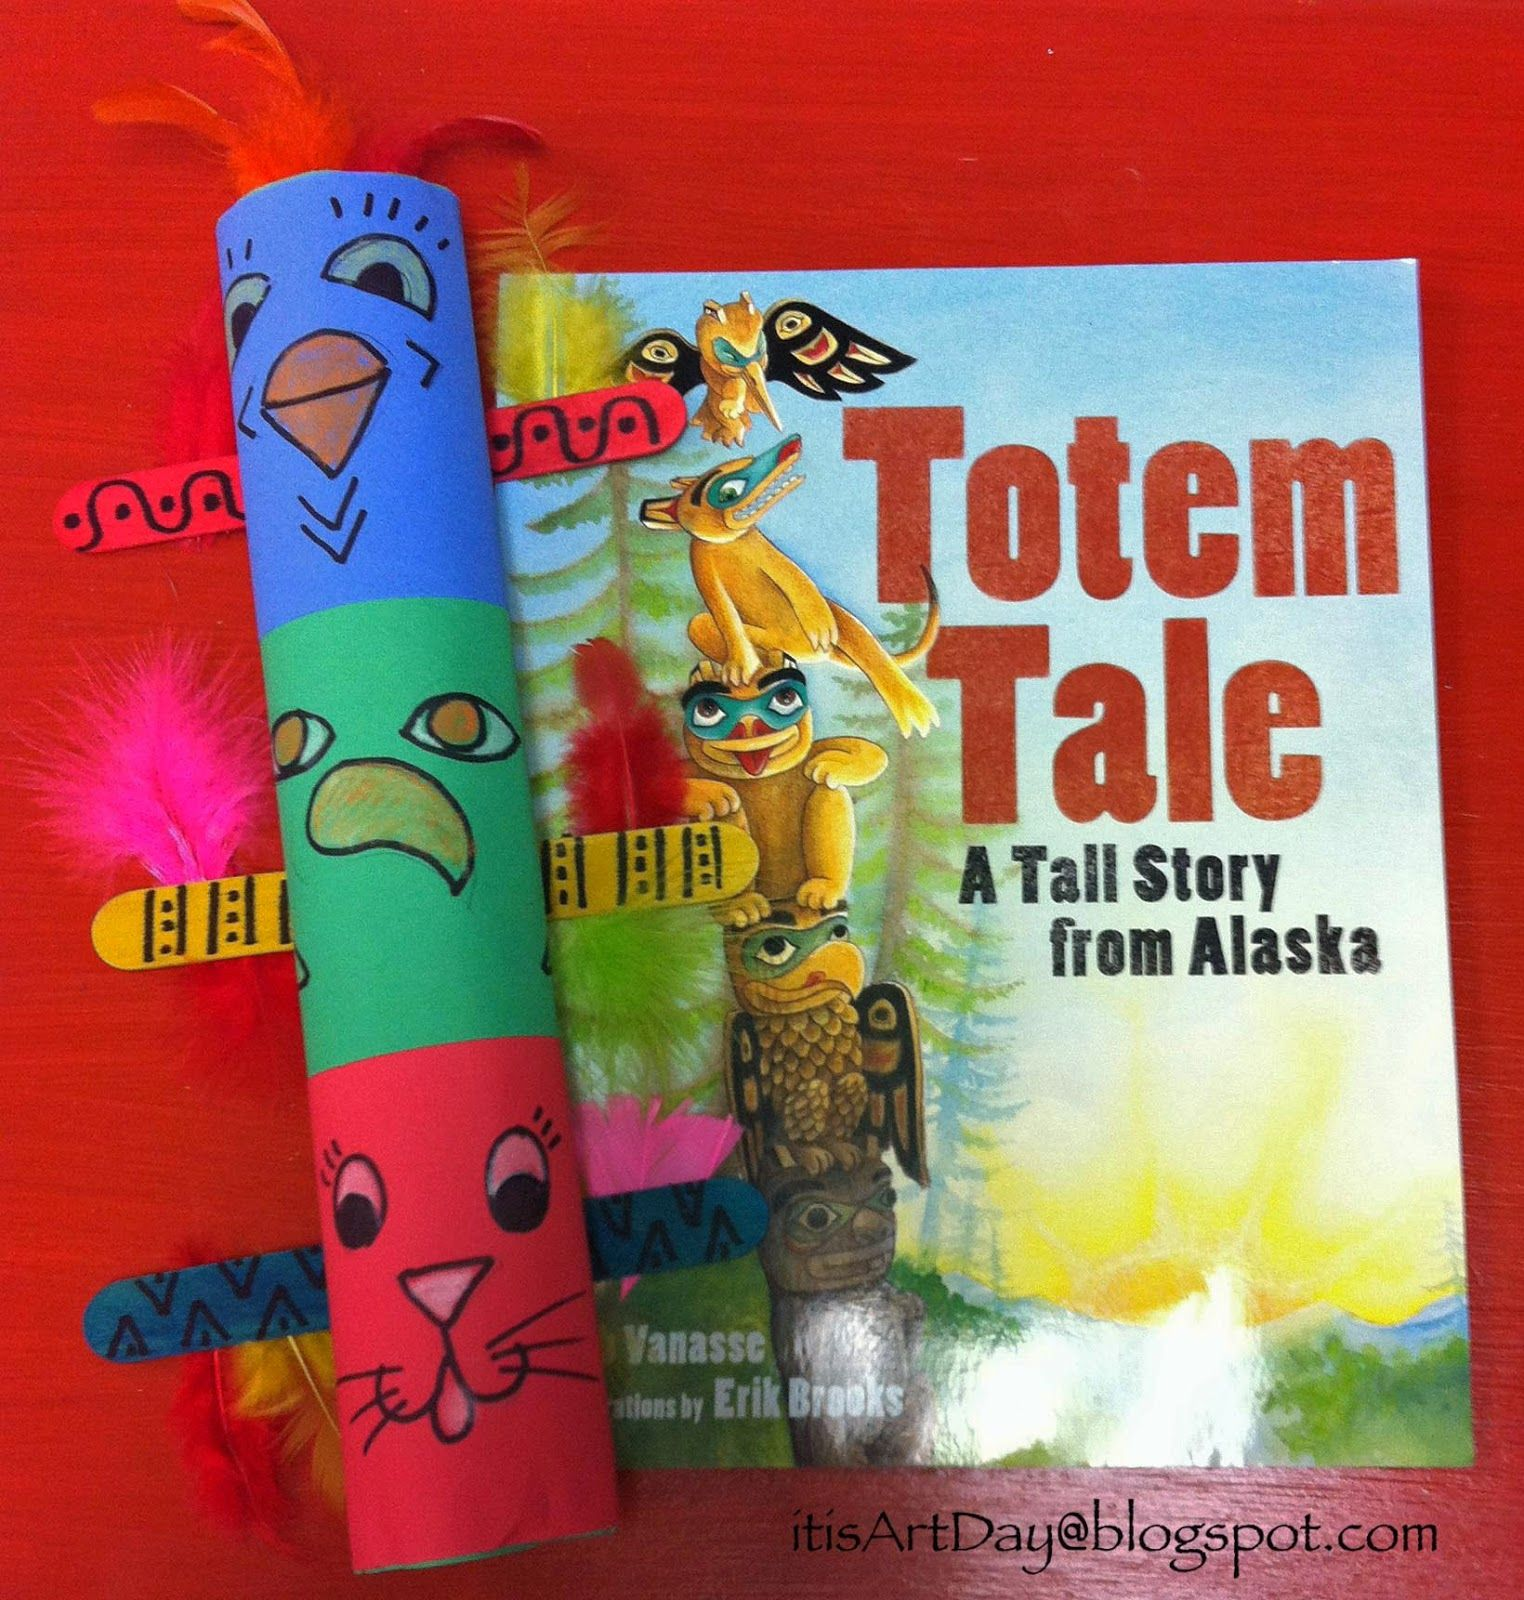 I Love This Book Totem Tale The Culture And Images Are